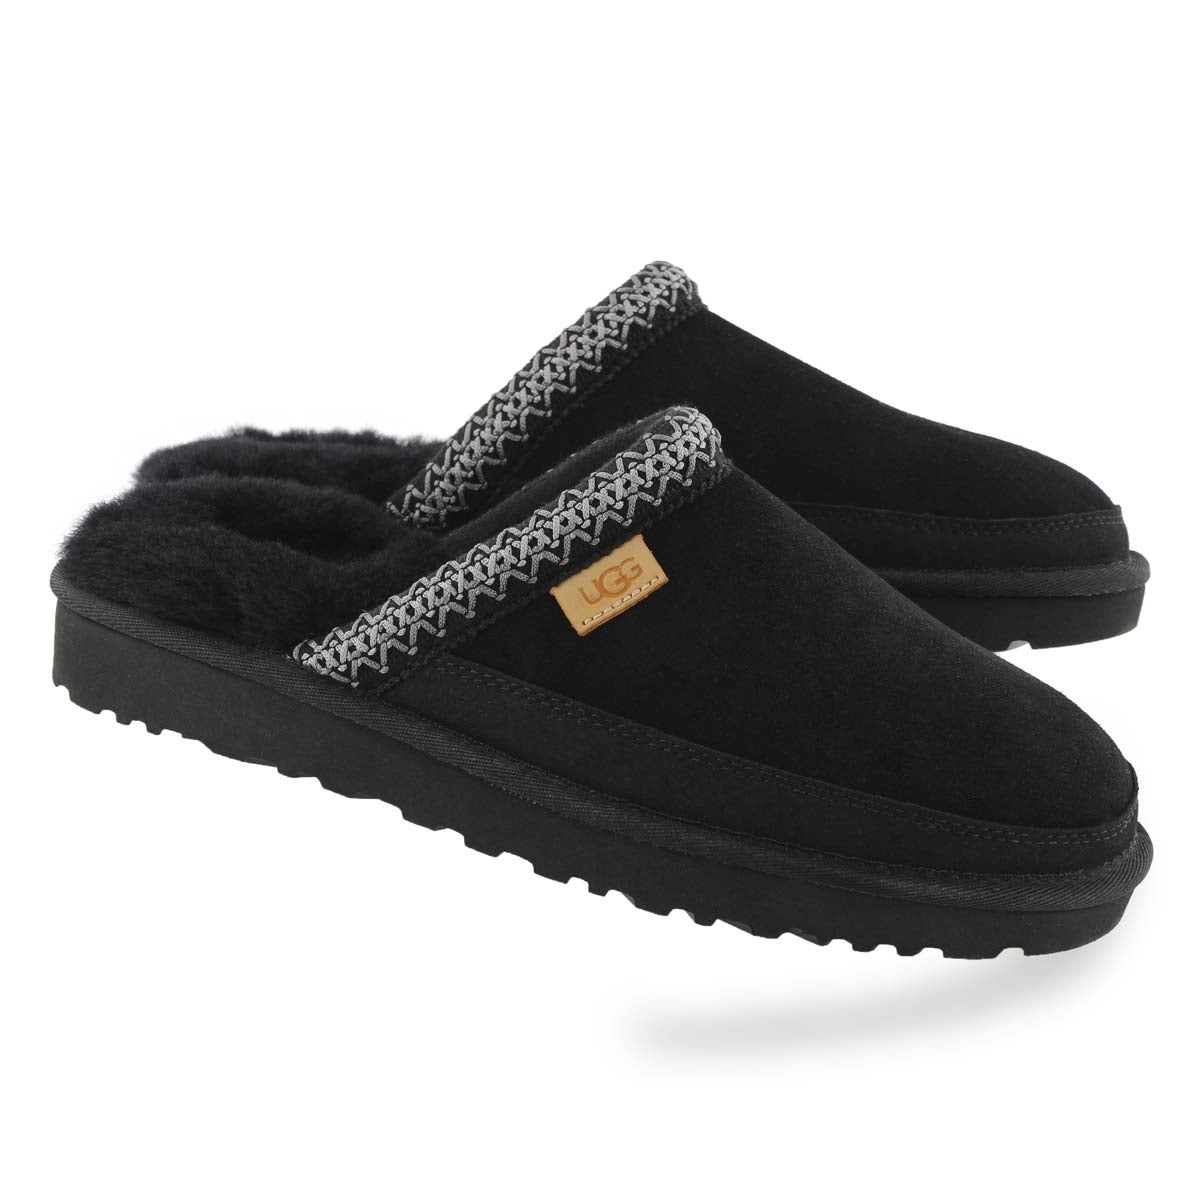 Mns Tasman blk shpskn open back slipper